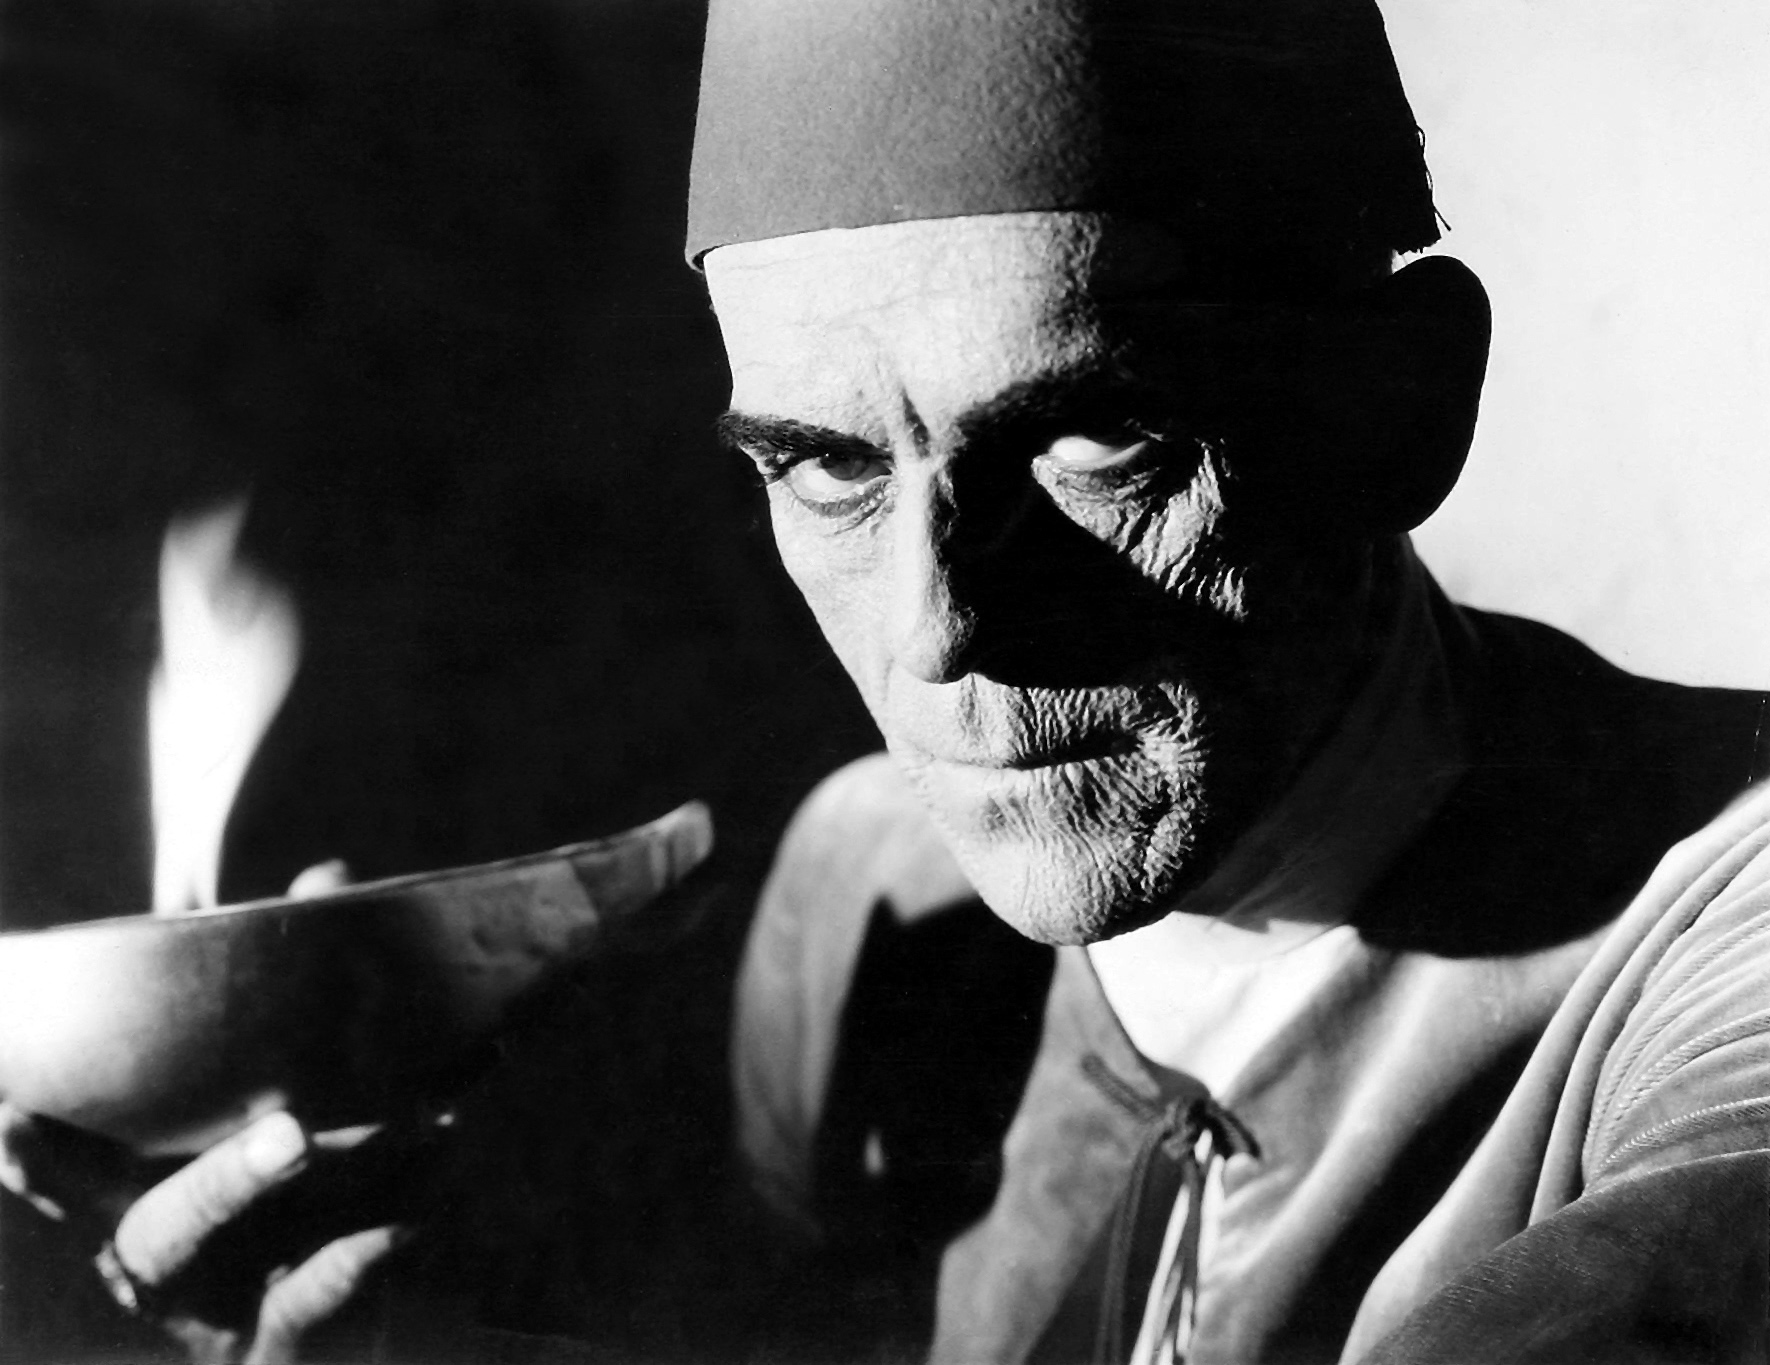 Boris Karloff as Ardath Bey, the reincarnation of the High Priest Im-ho-tep in The Mummy (1932)